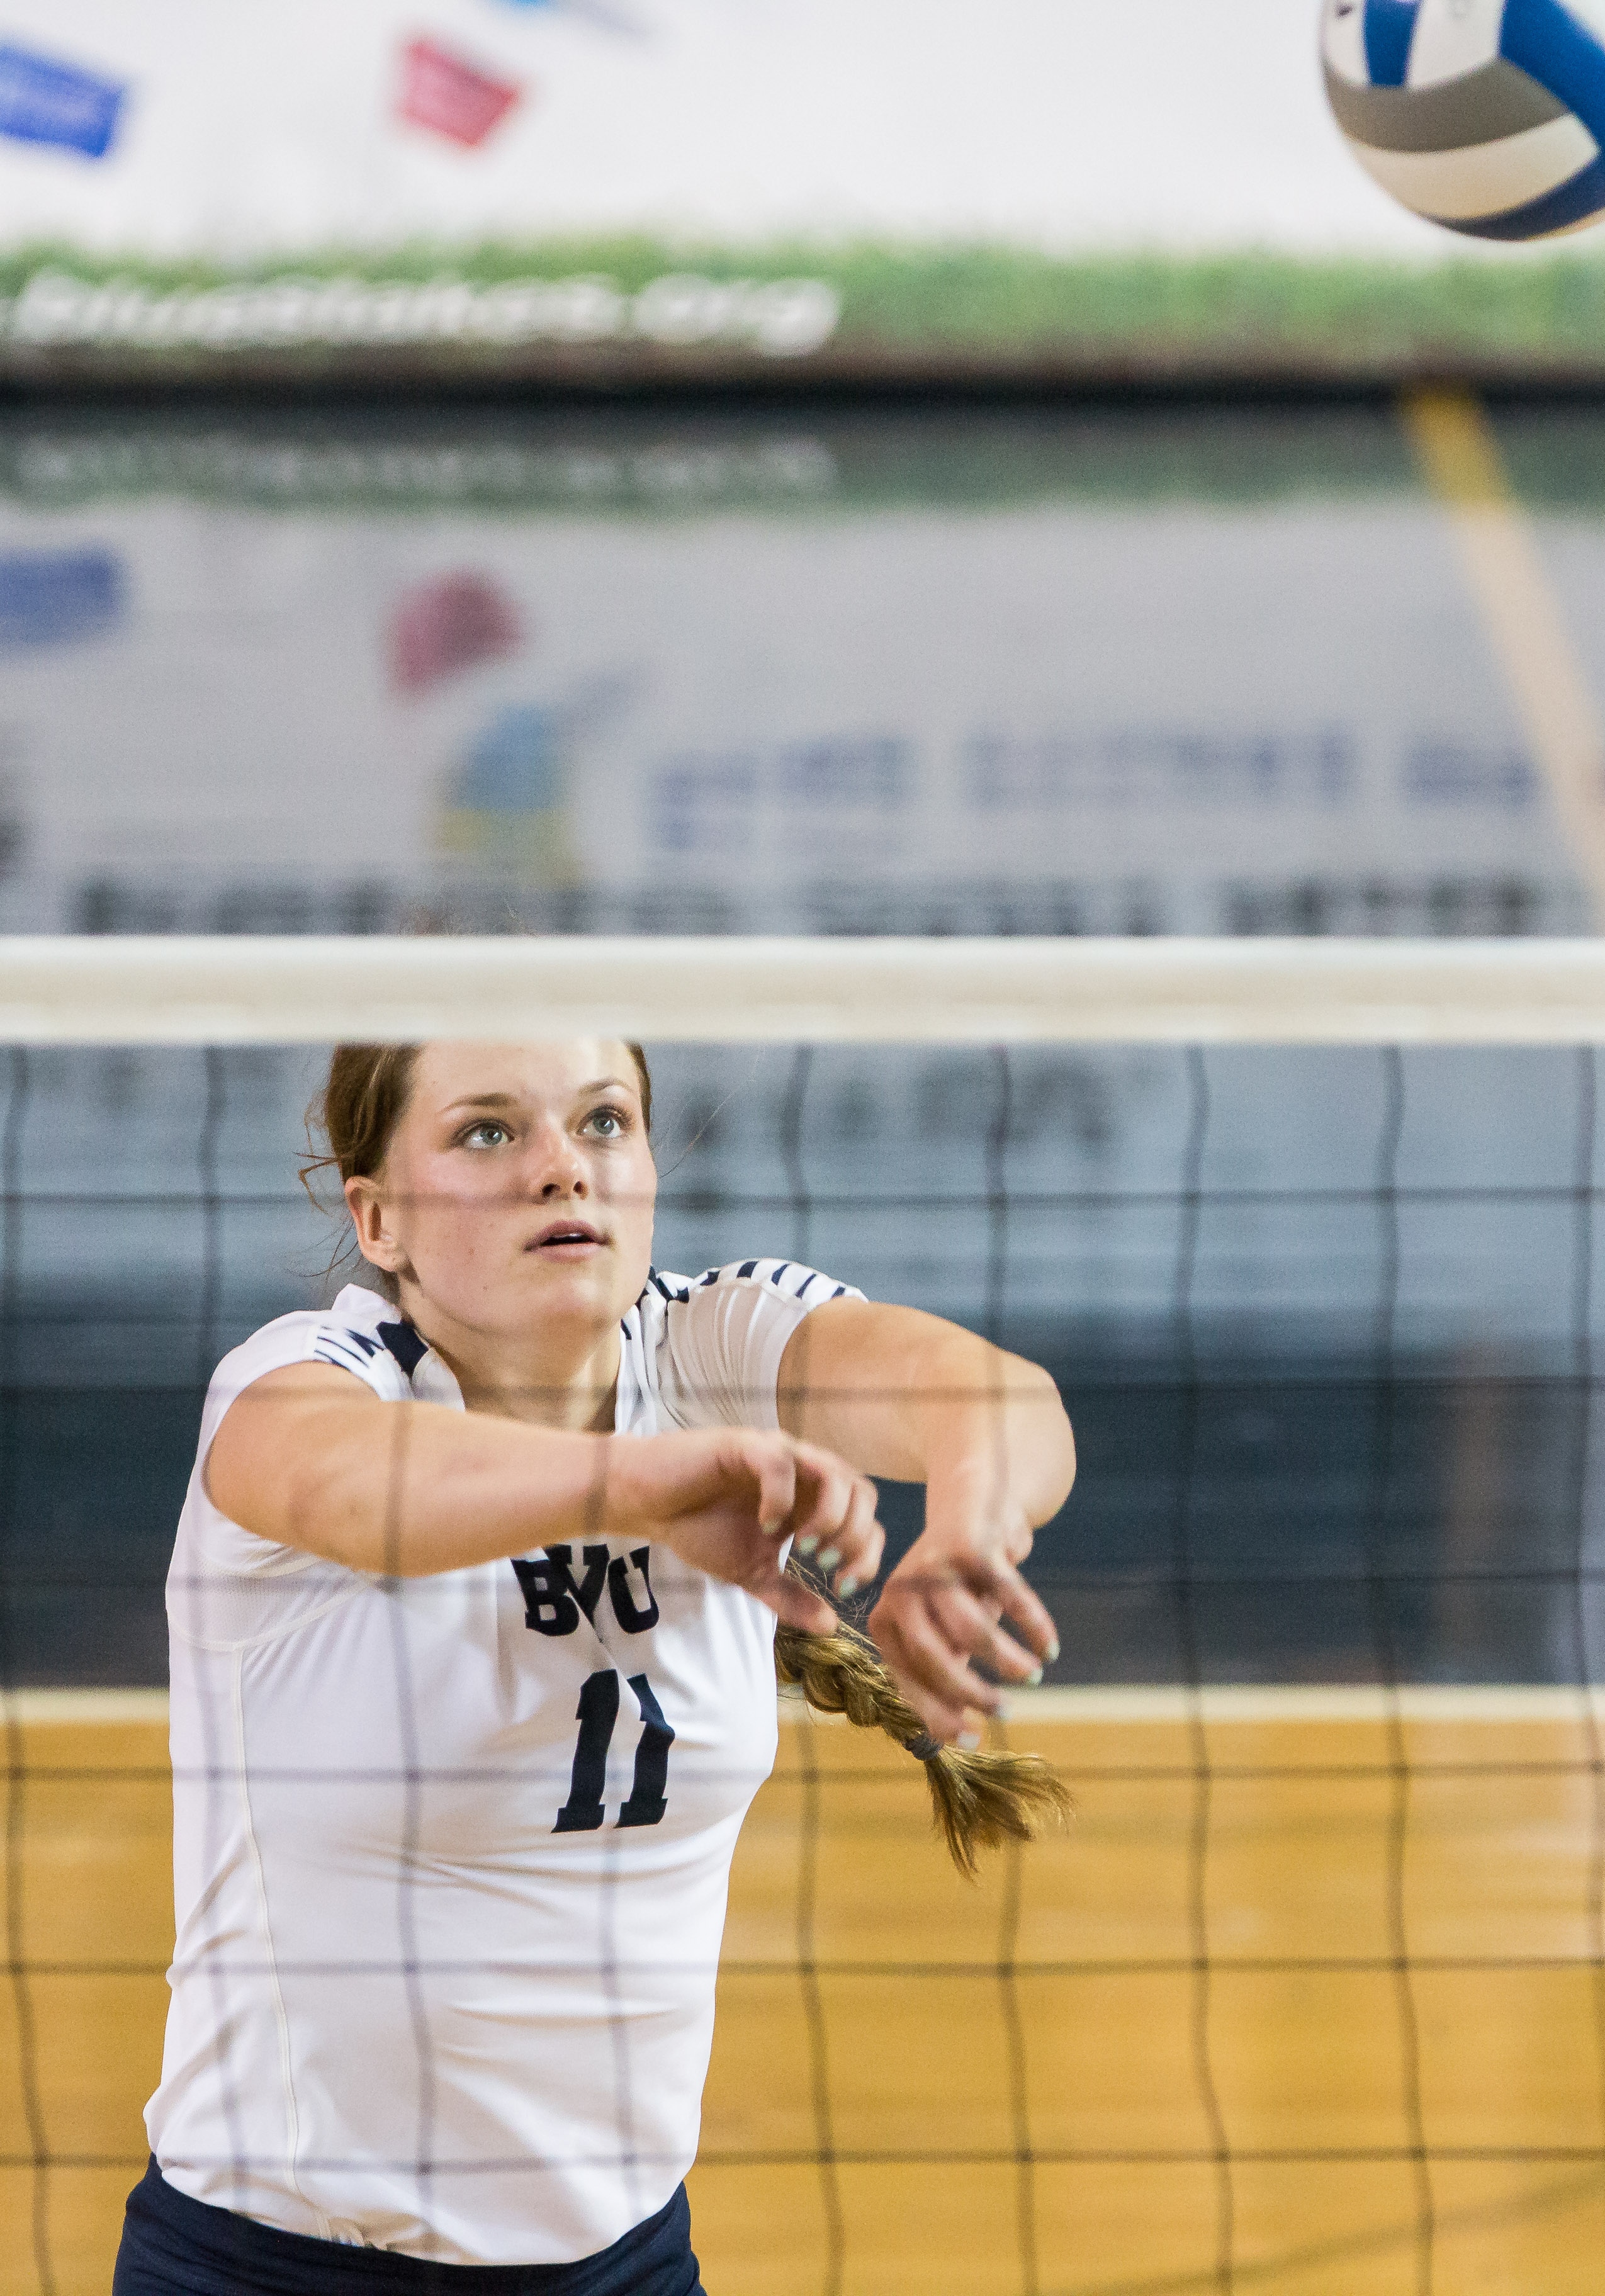 Byu Women S Volleyball Freshmen Open Up About Playing Time Pressure The Daily Universe